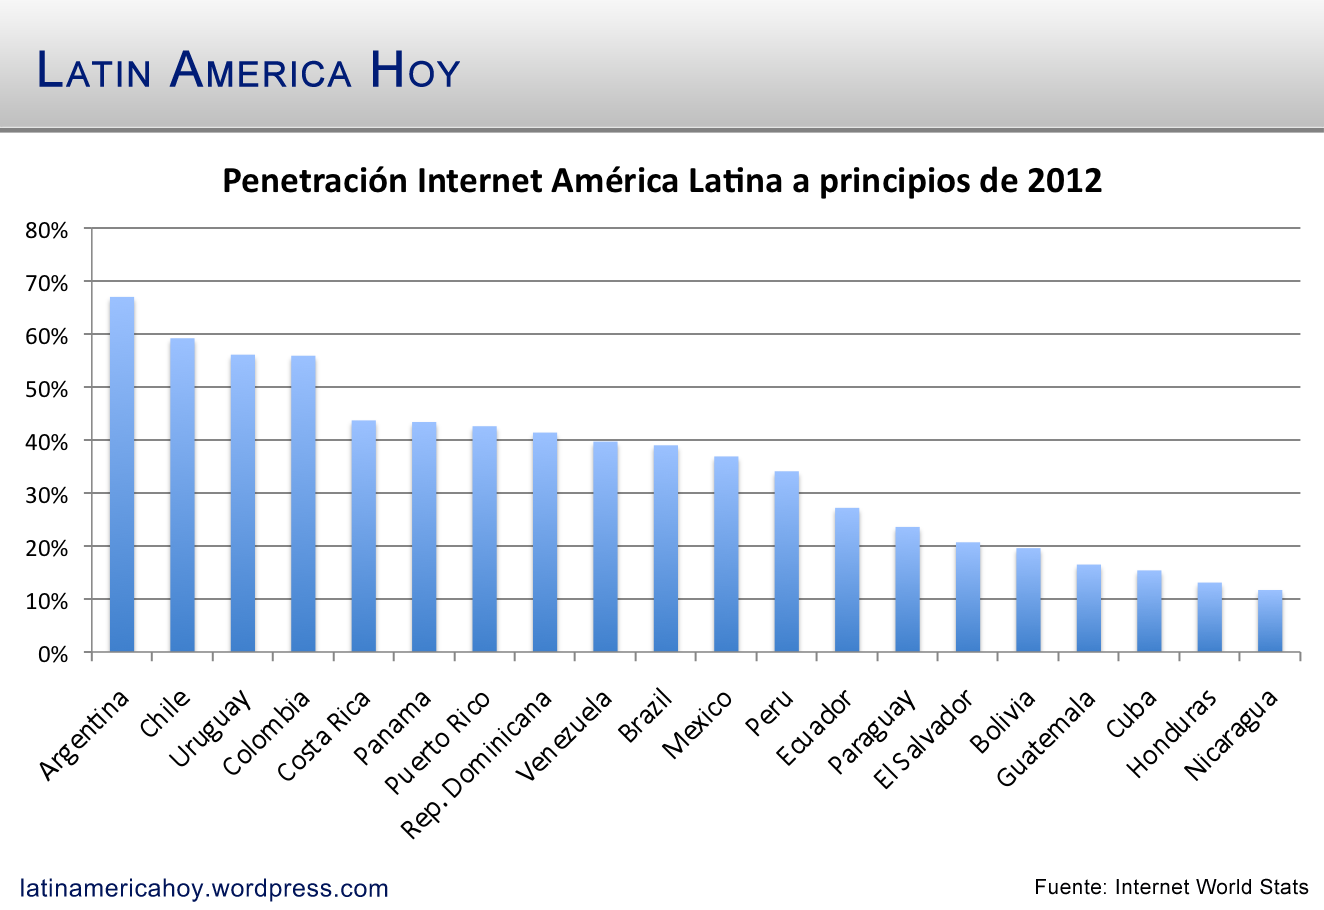 penetracion-internet-america-latina